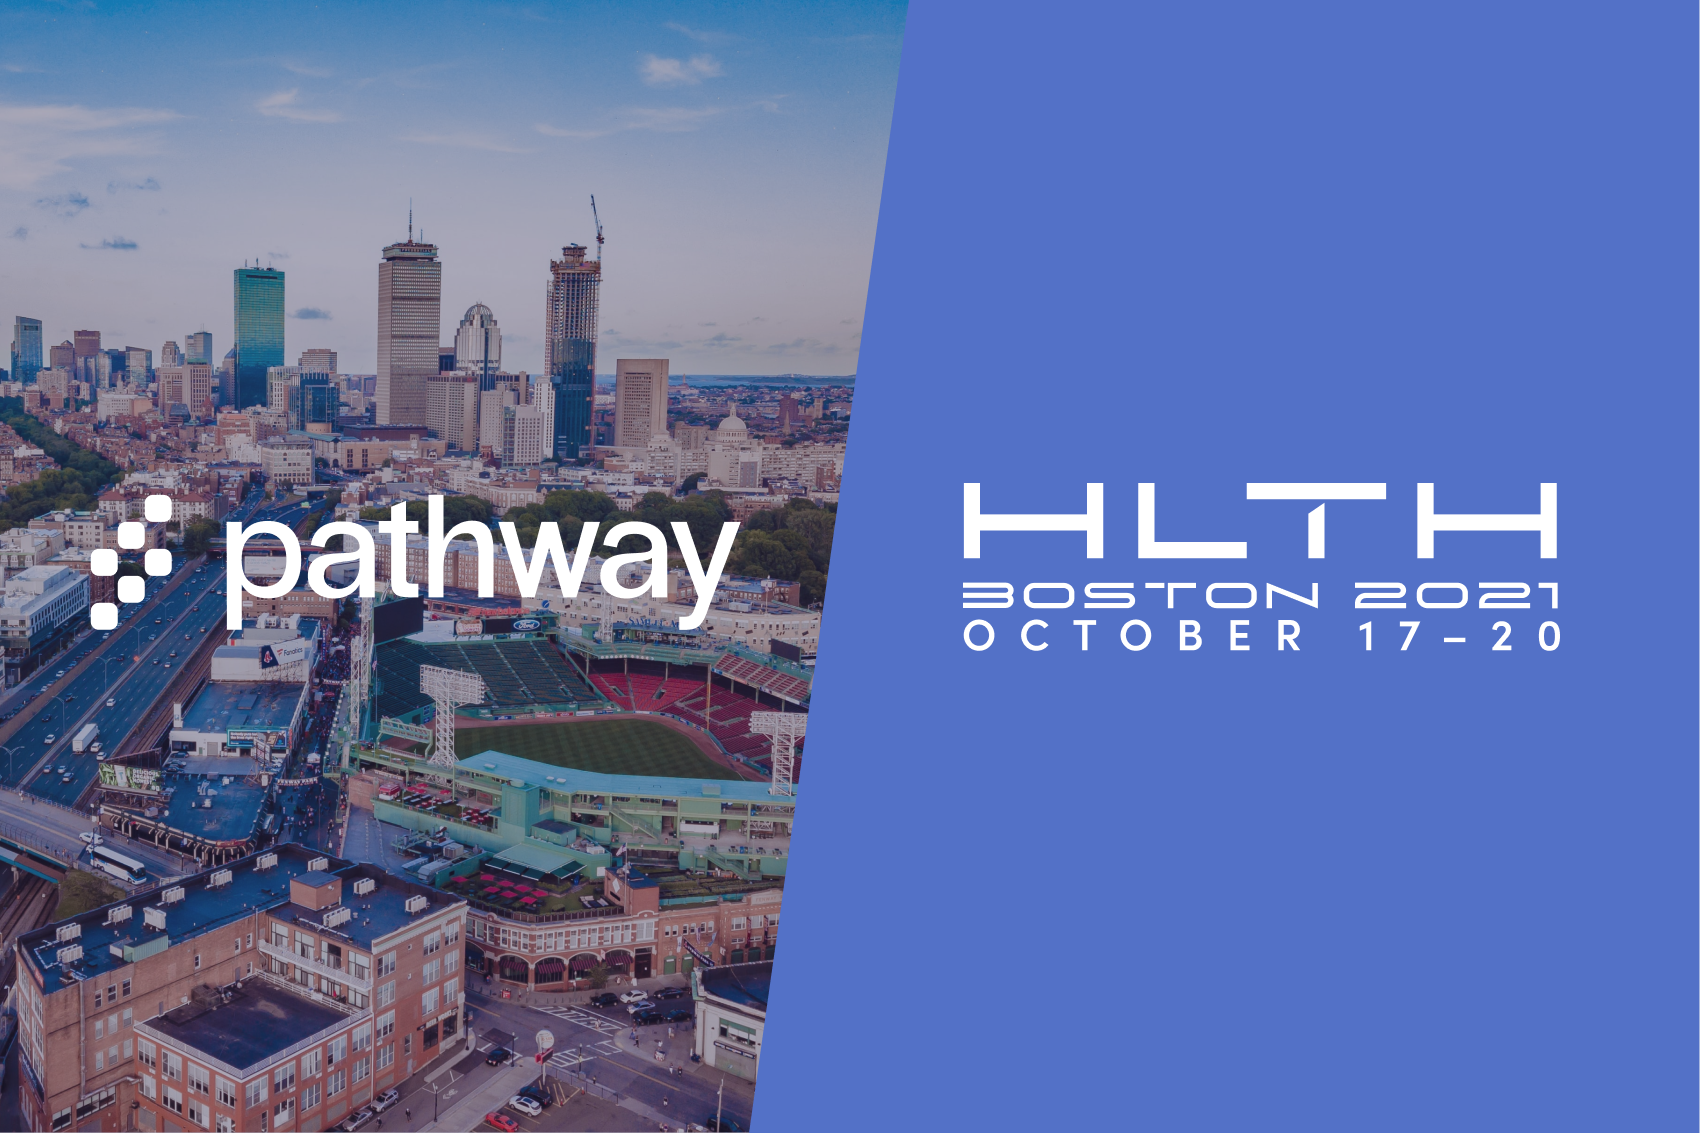 Meet with us at the HLTH 2021 conference in Boston to learn how Pathway's point-of-care tools drive practice change and improve outcomes.